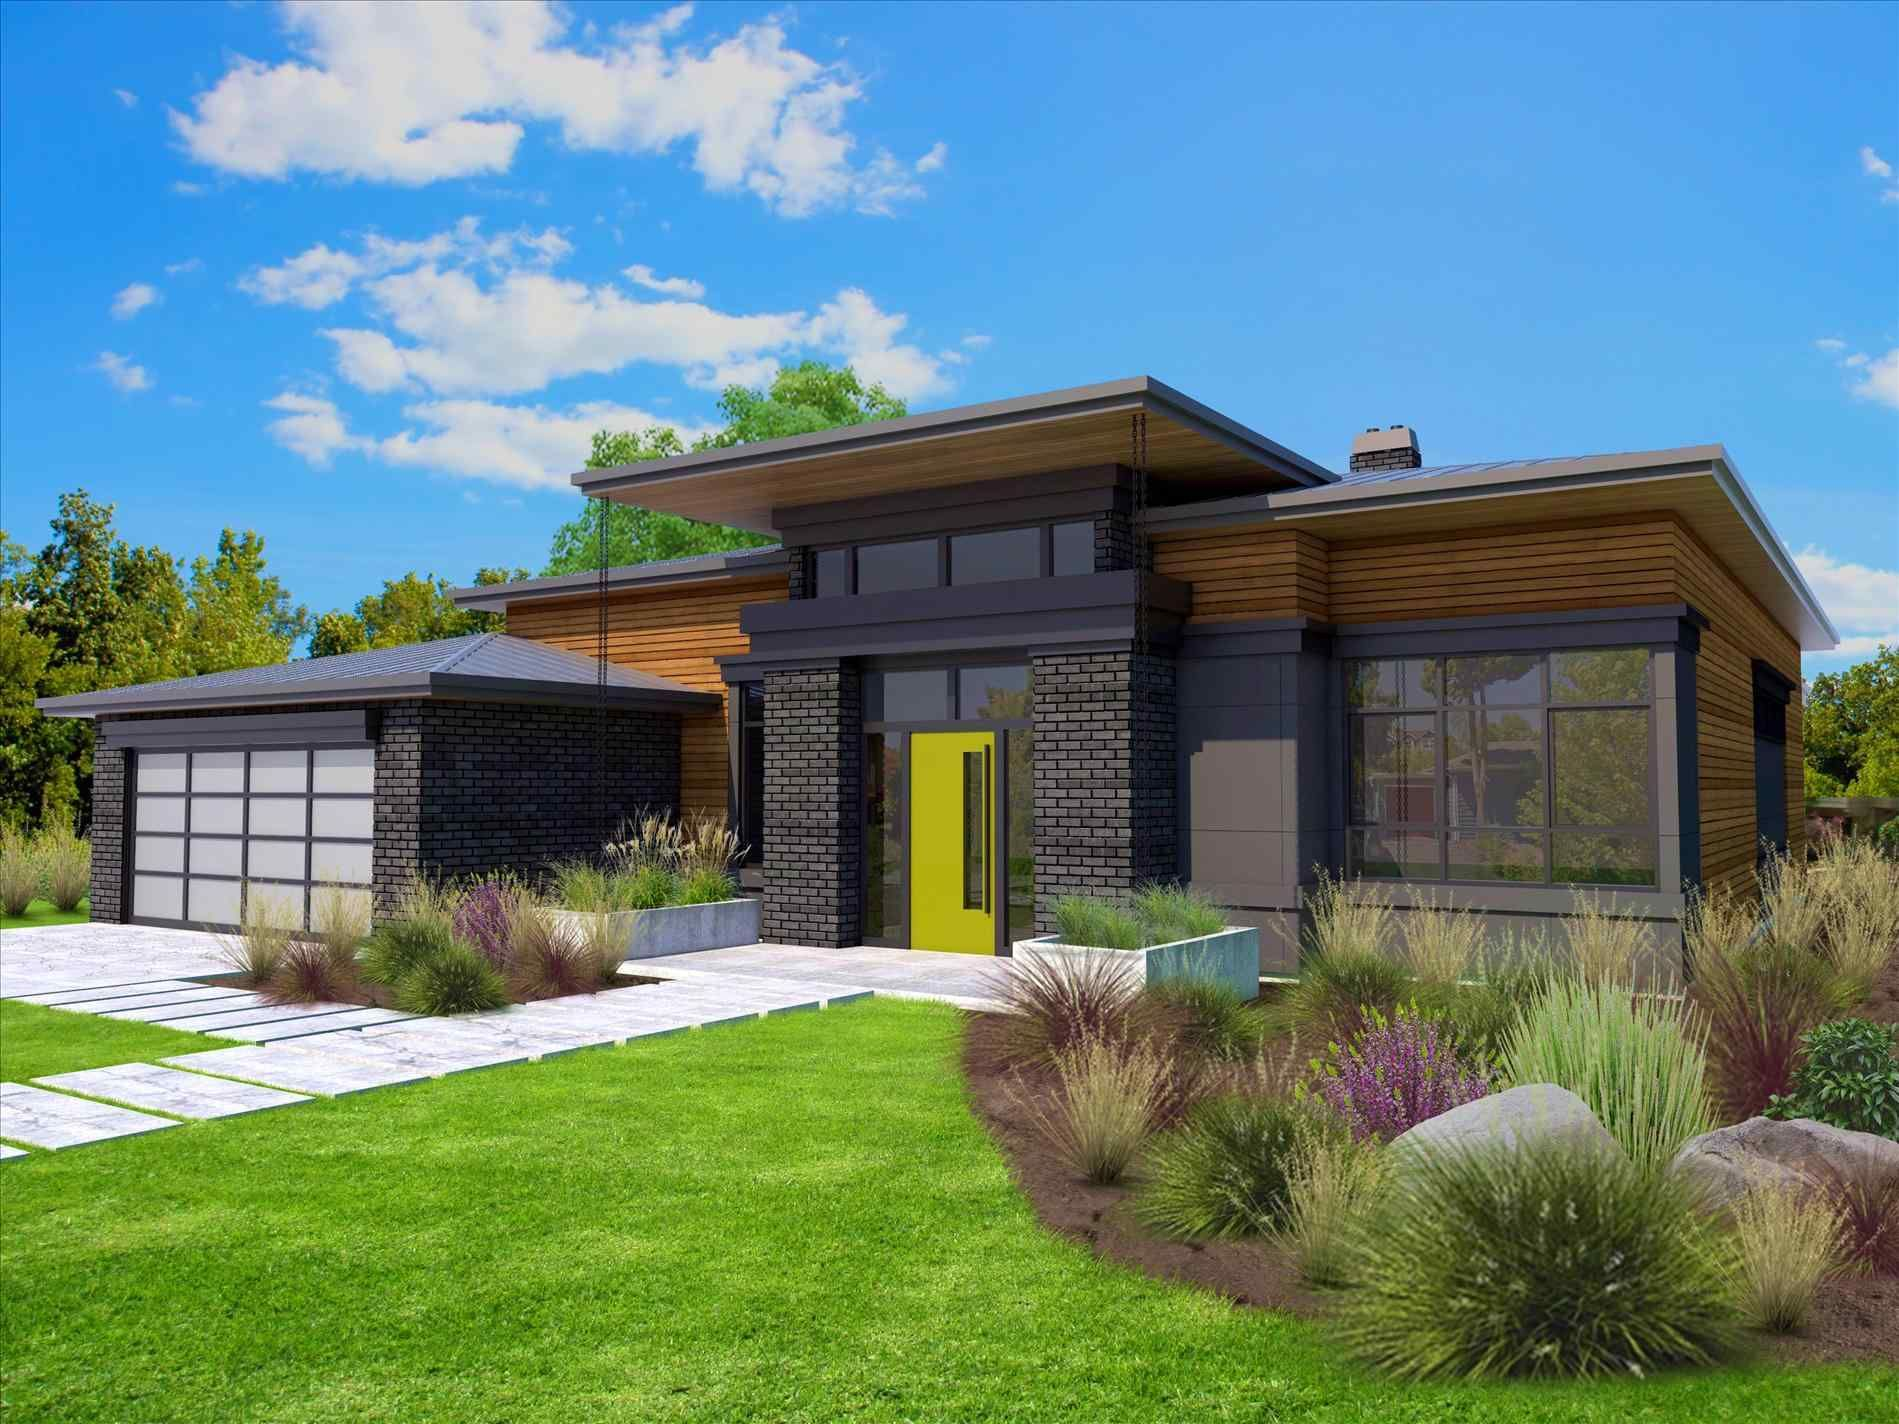 Modern hip roof designs craftsman style villa in new haven hip roof cool modern barn